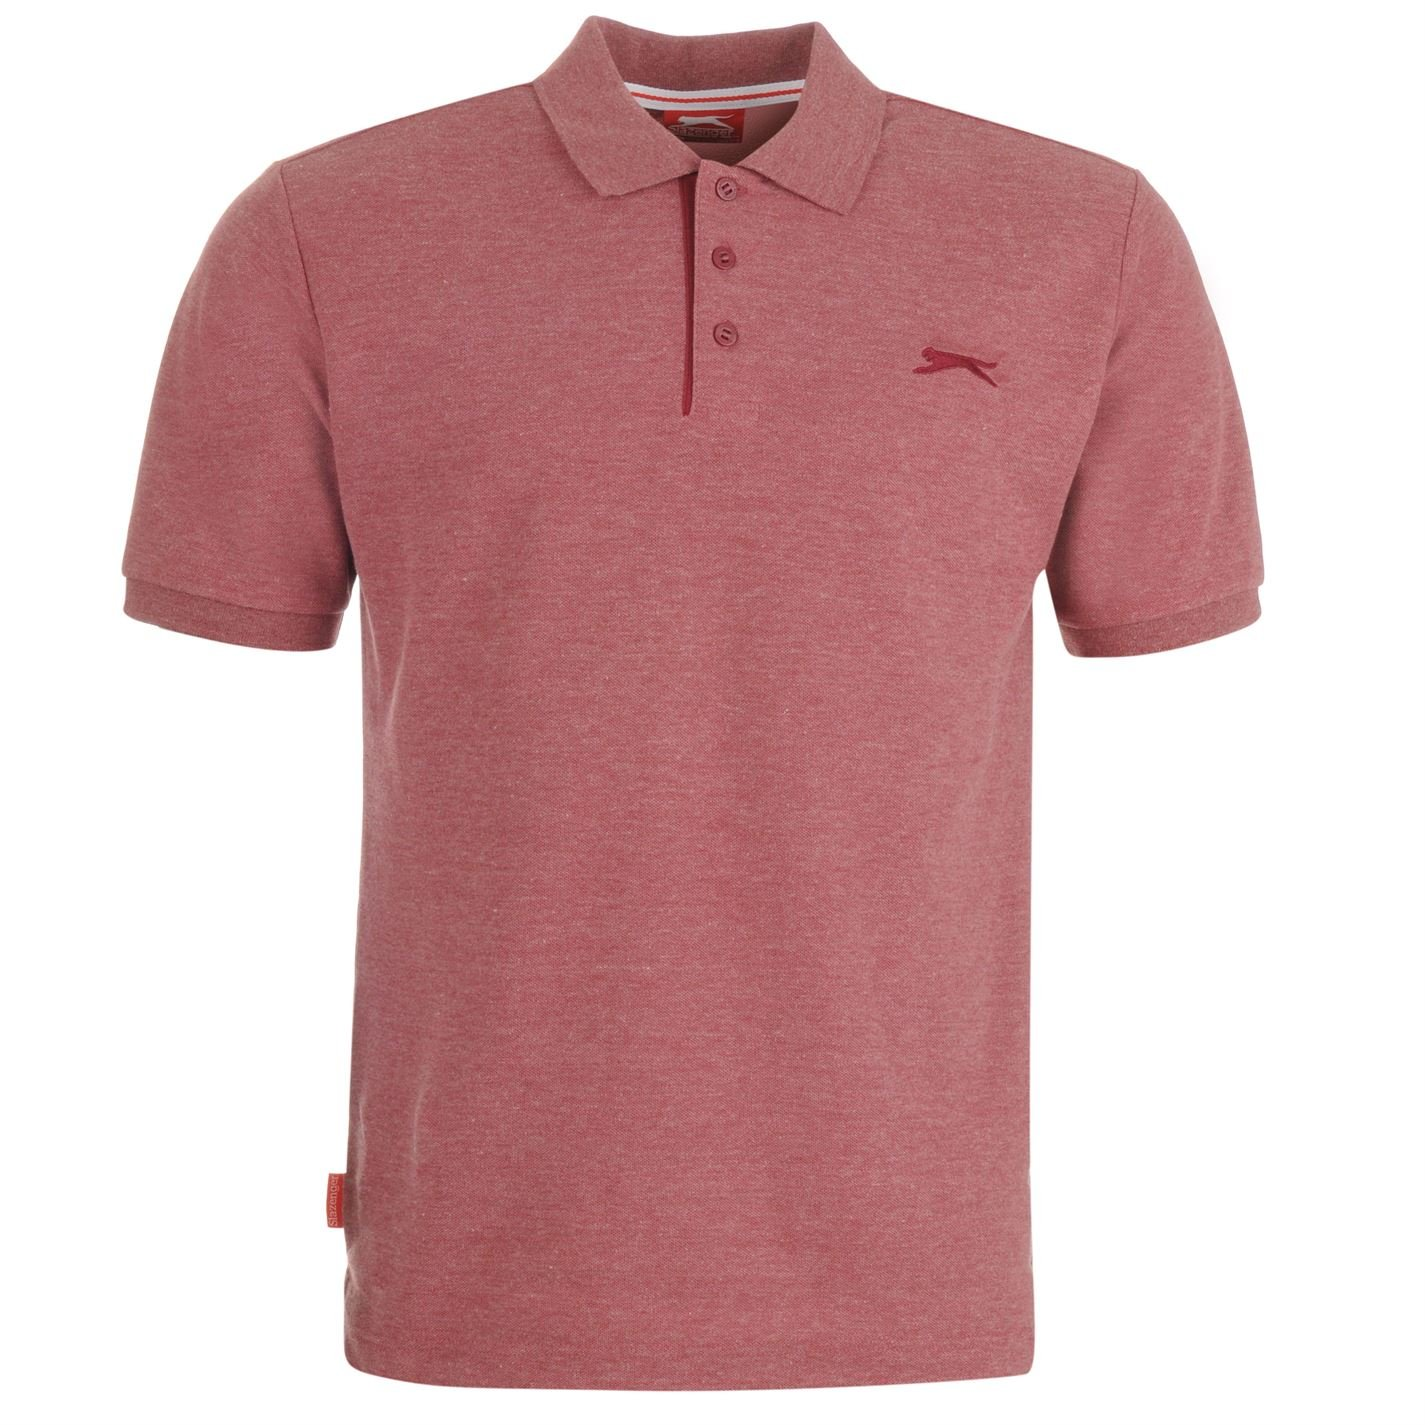 3f29a347 Plain Red Mens Polo Shirts - DREAMWORKS